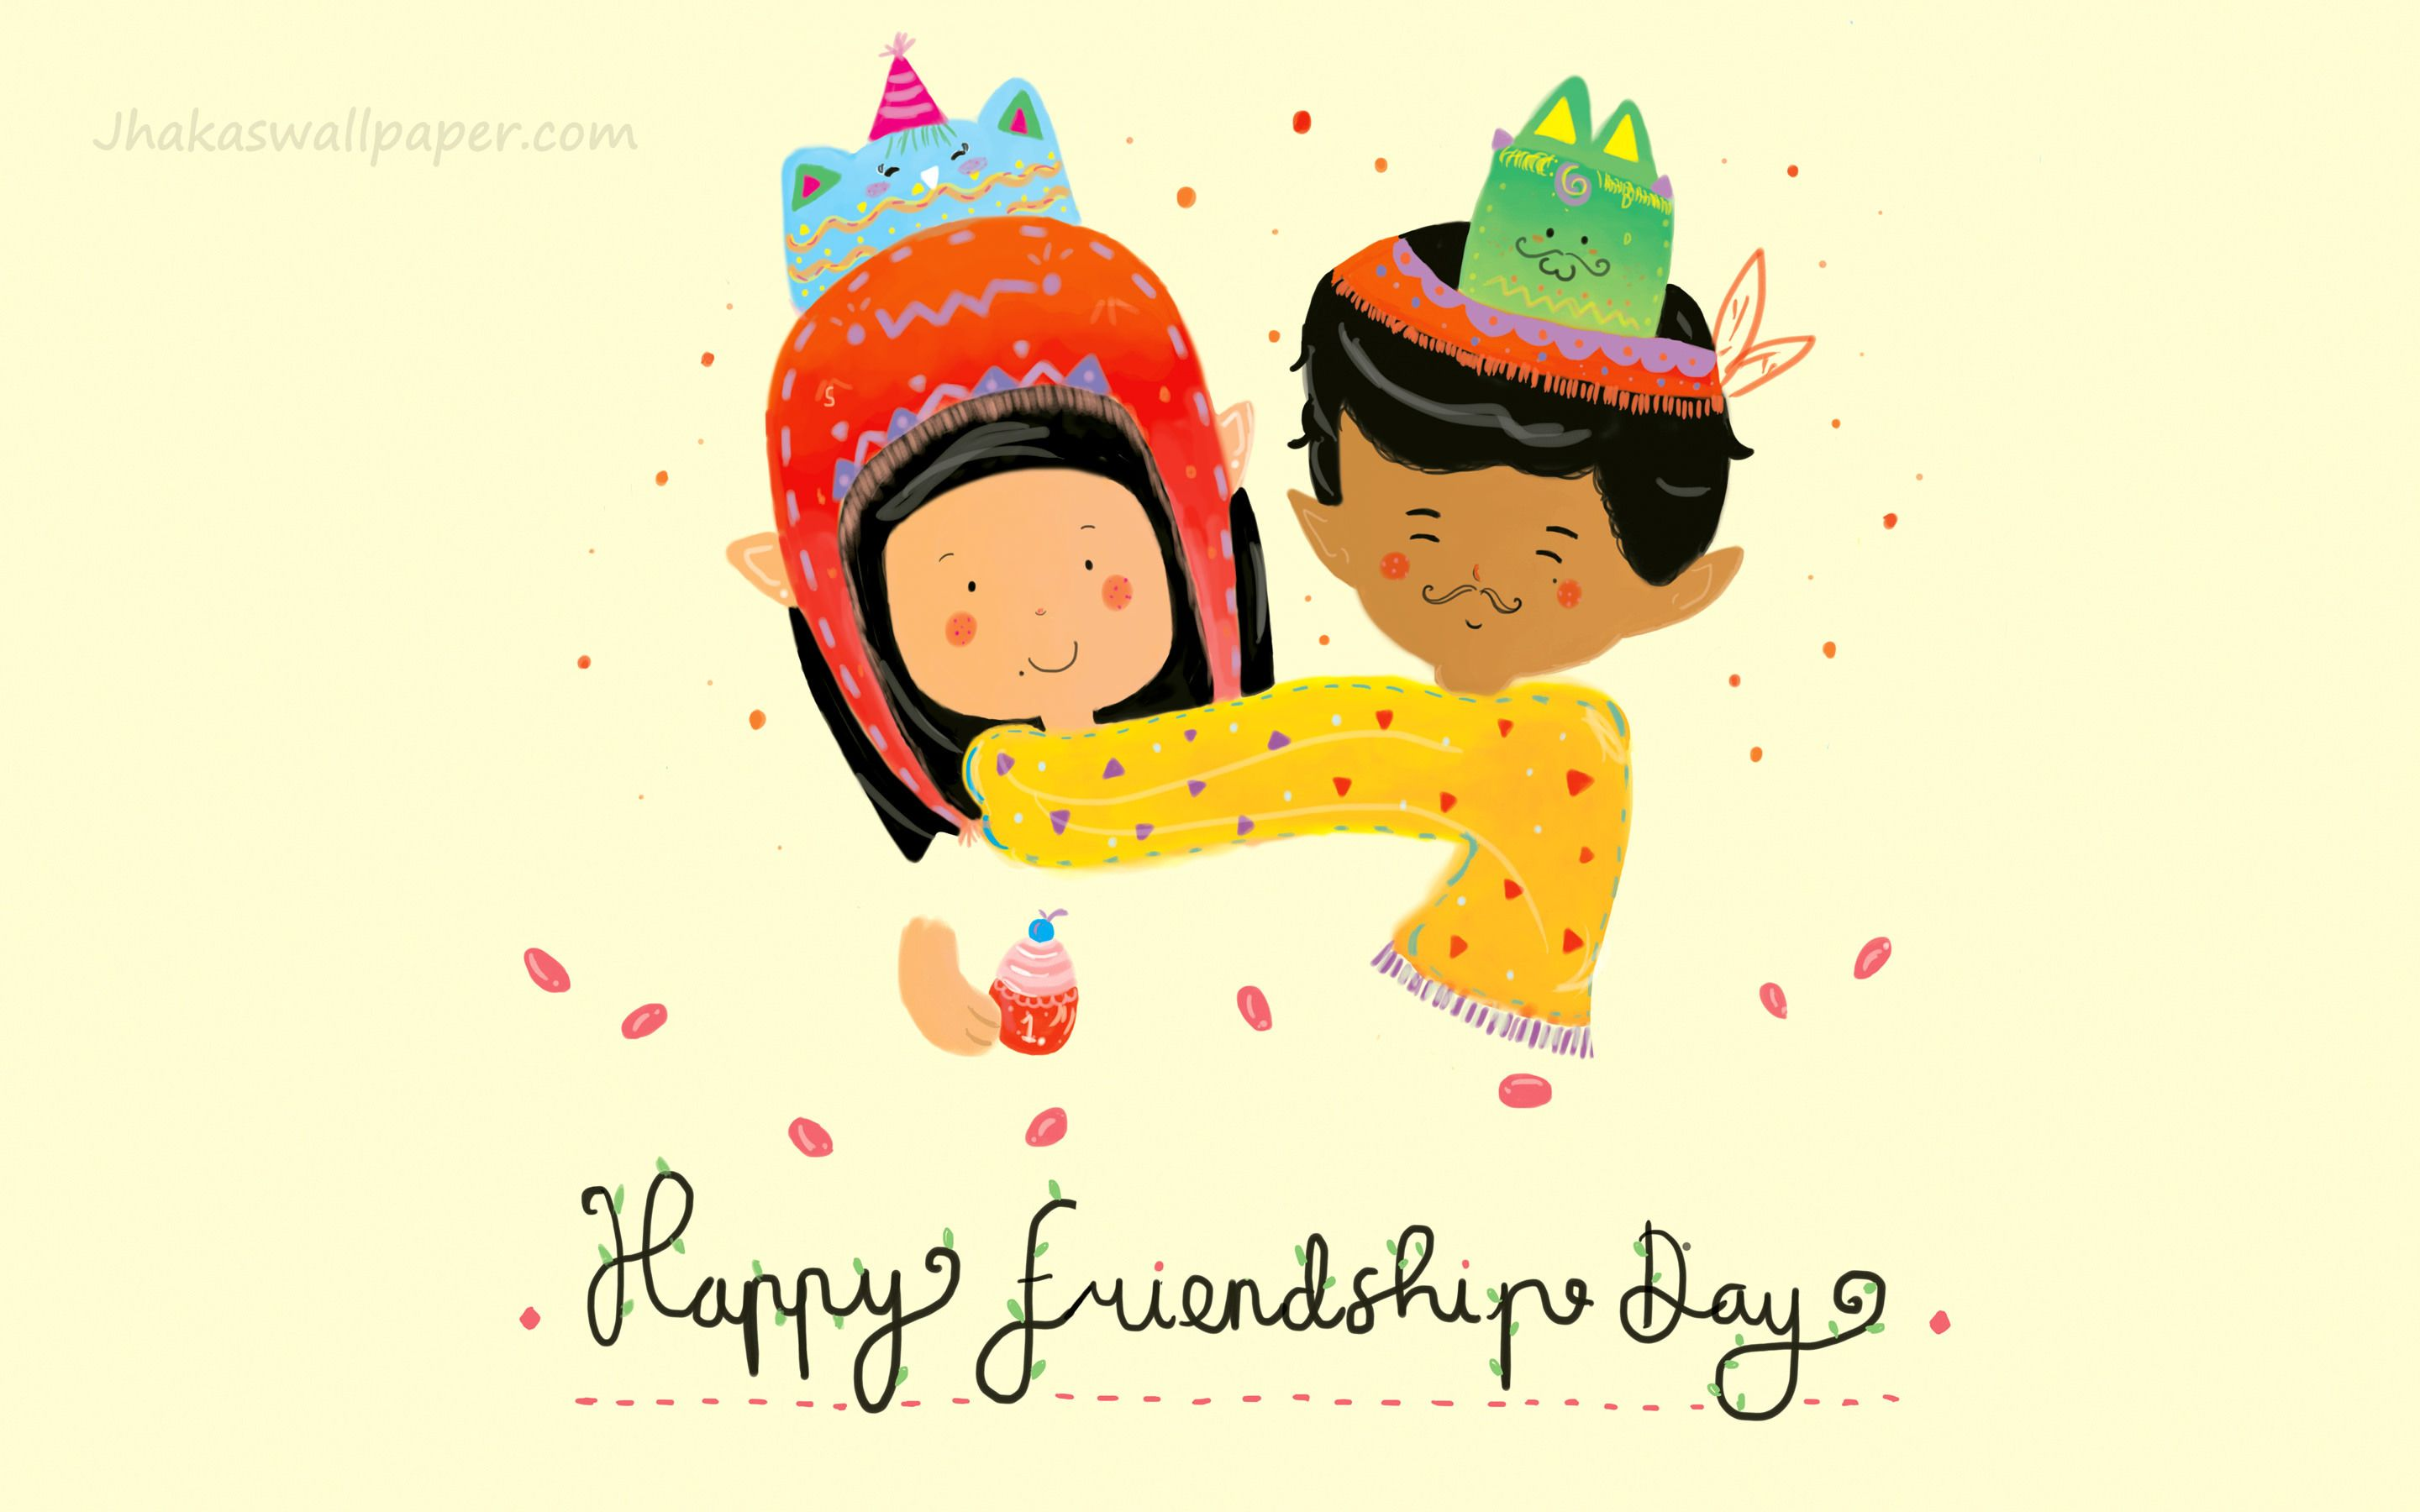 Friendship day animated boy girl wallpapers jhakaswallpaper friendship day animated boy girl wallpapers kristyandbryce Images